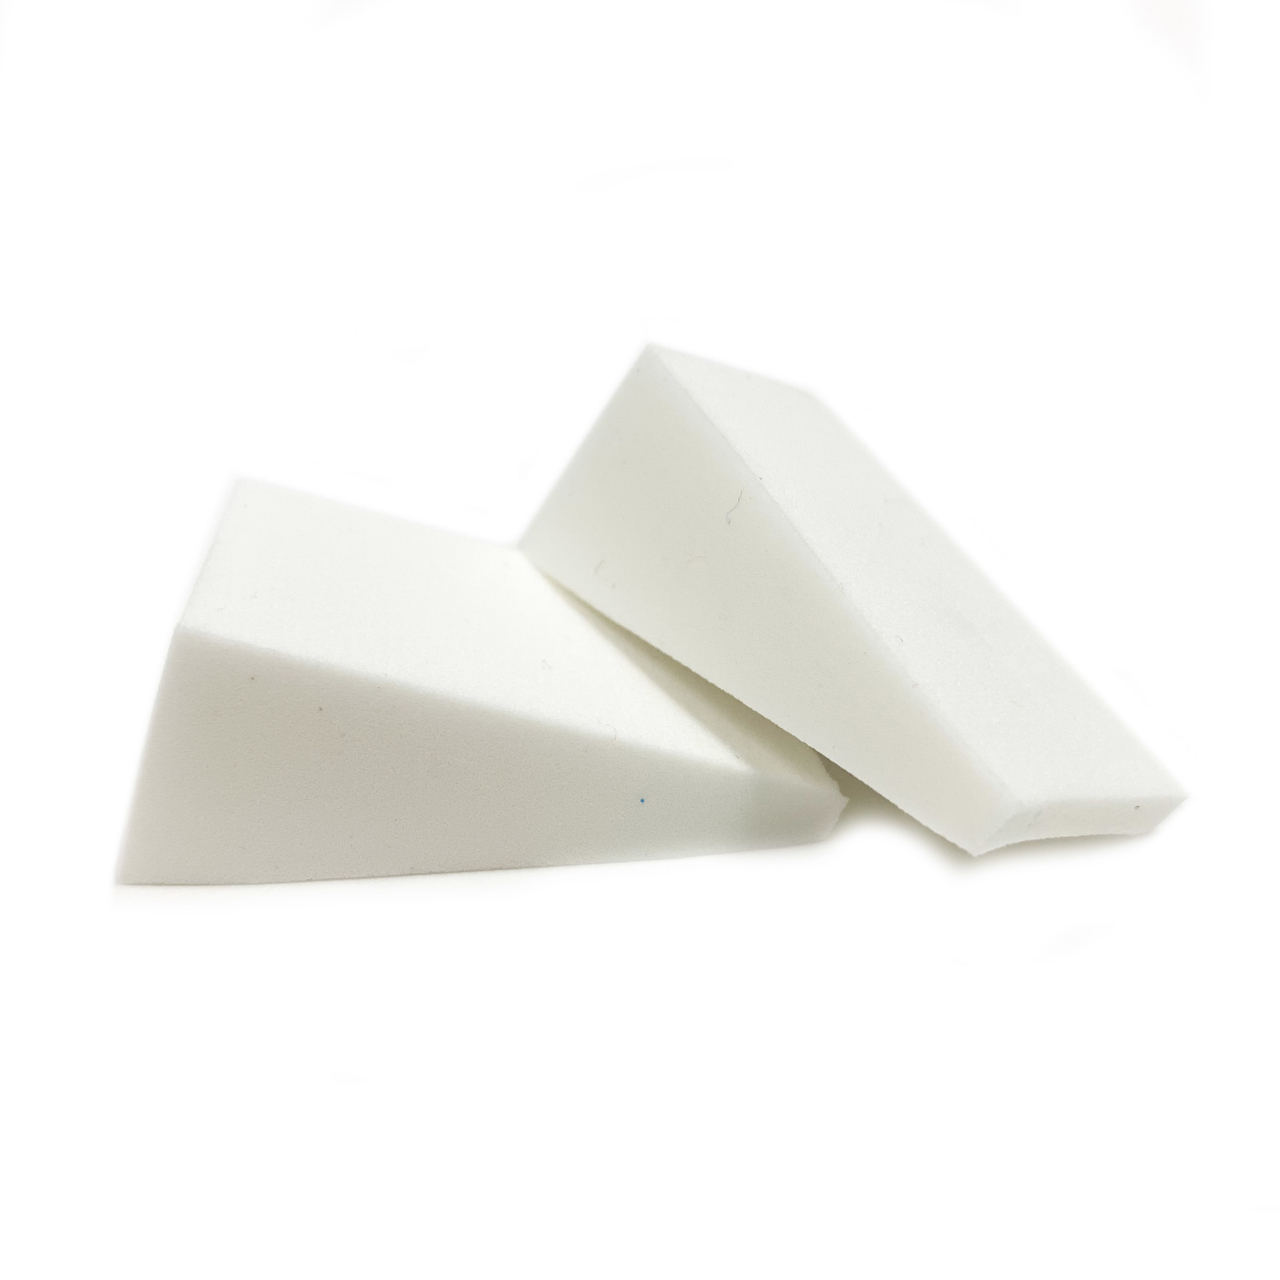 Picture of Cosmetic Sponge Wedges - 2pc